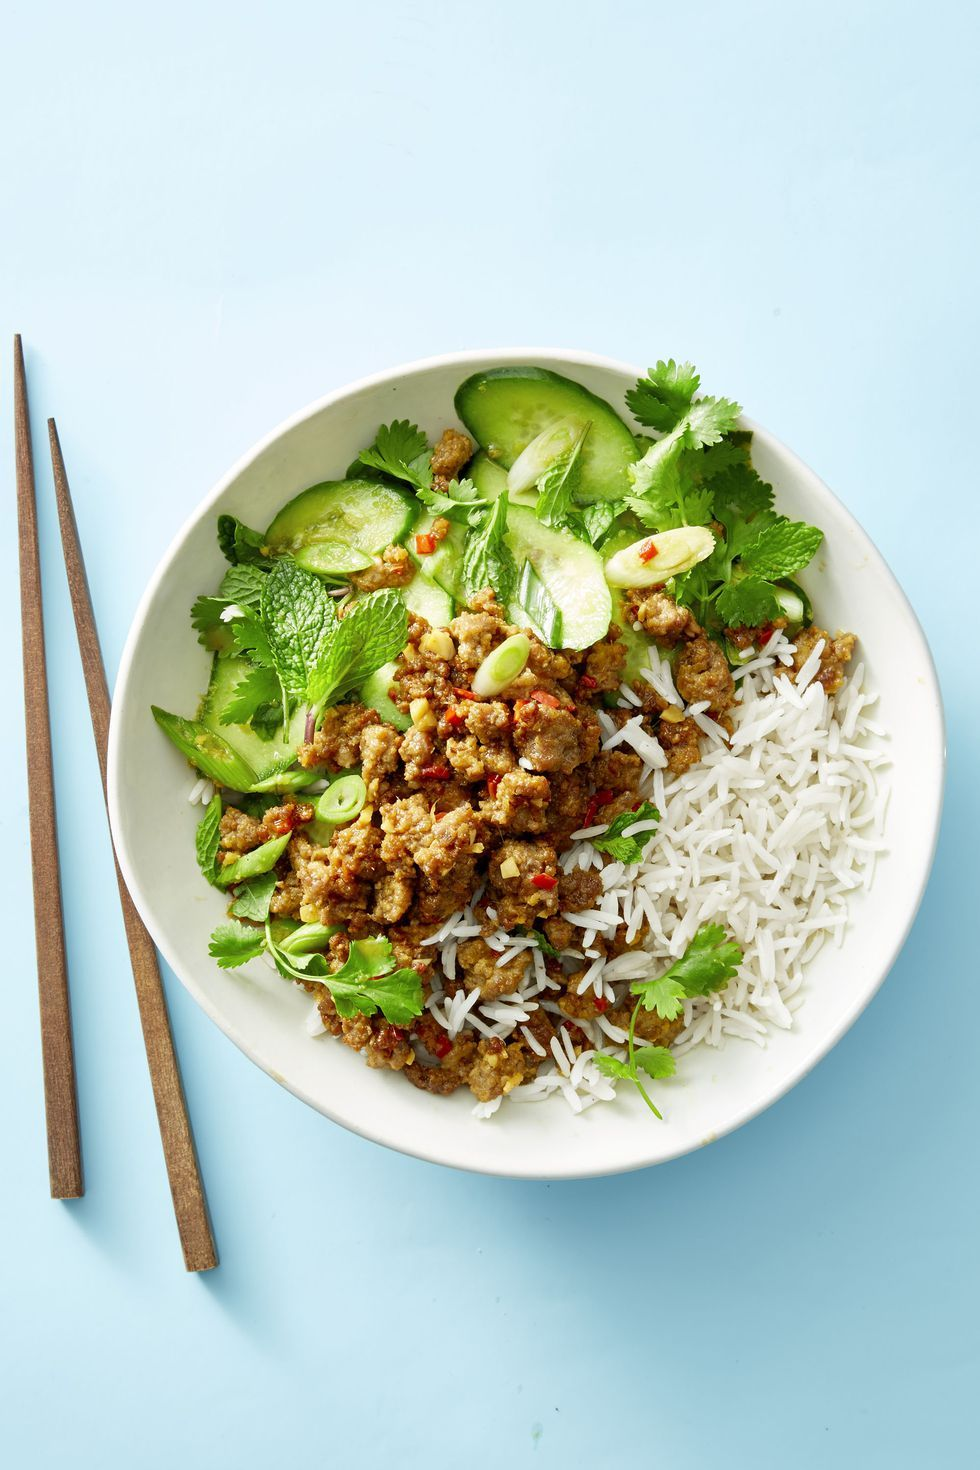 Family Style Recipes Gingery Pork Cucumber Salad